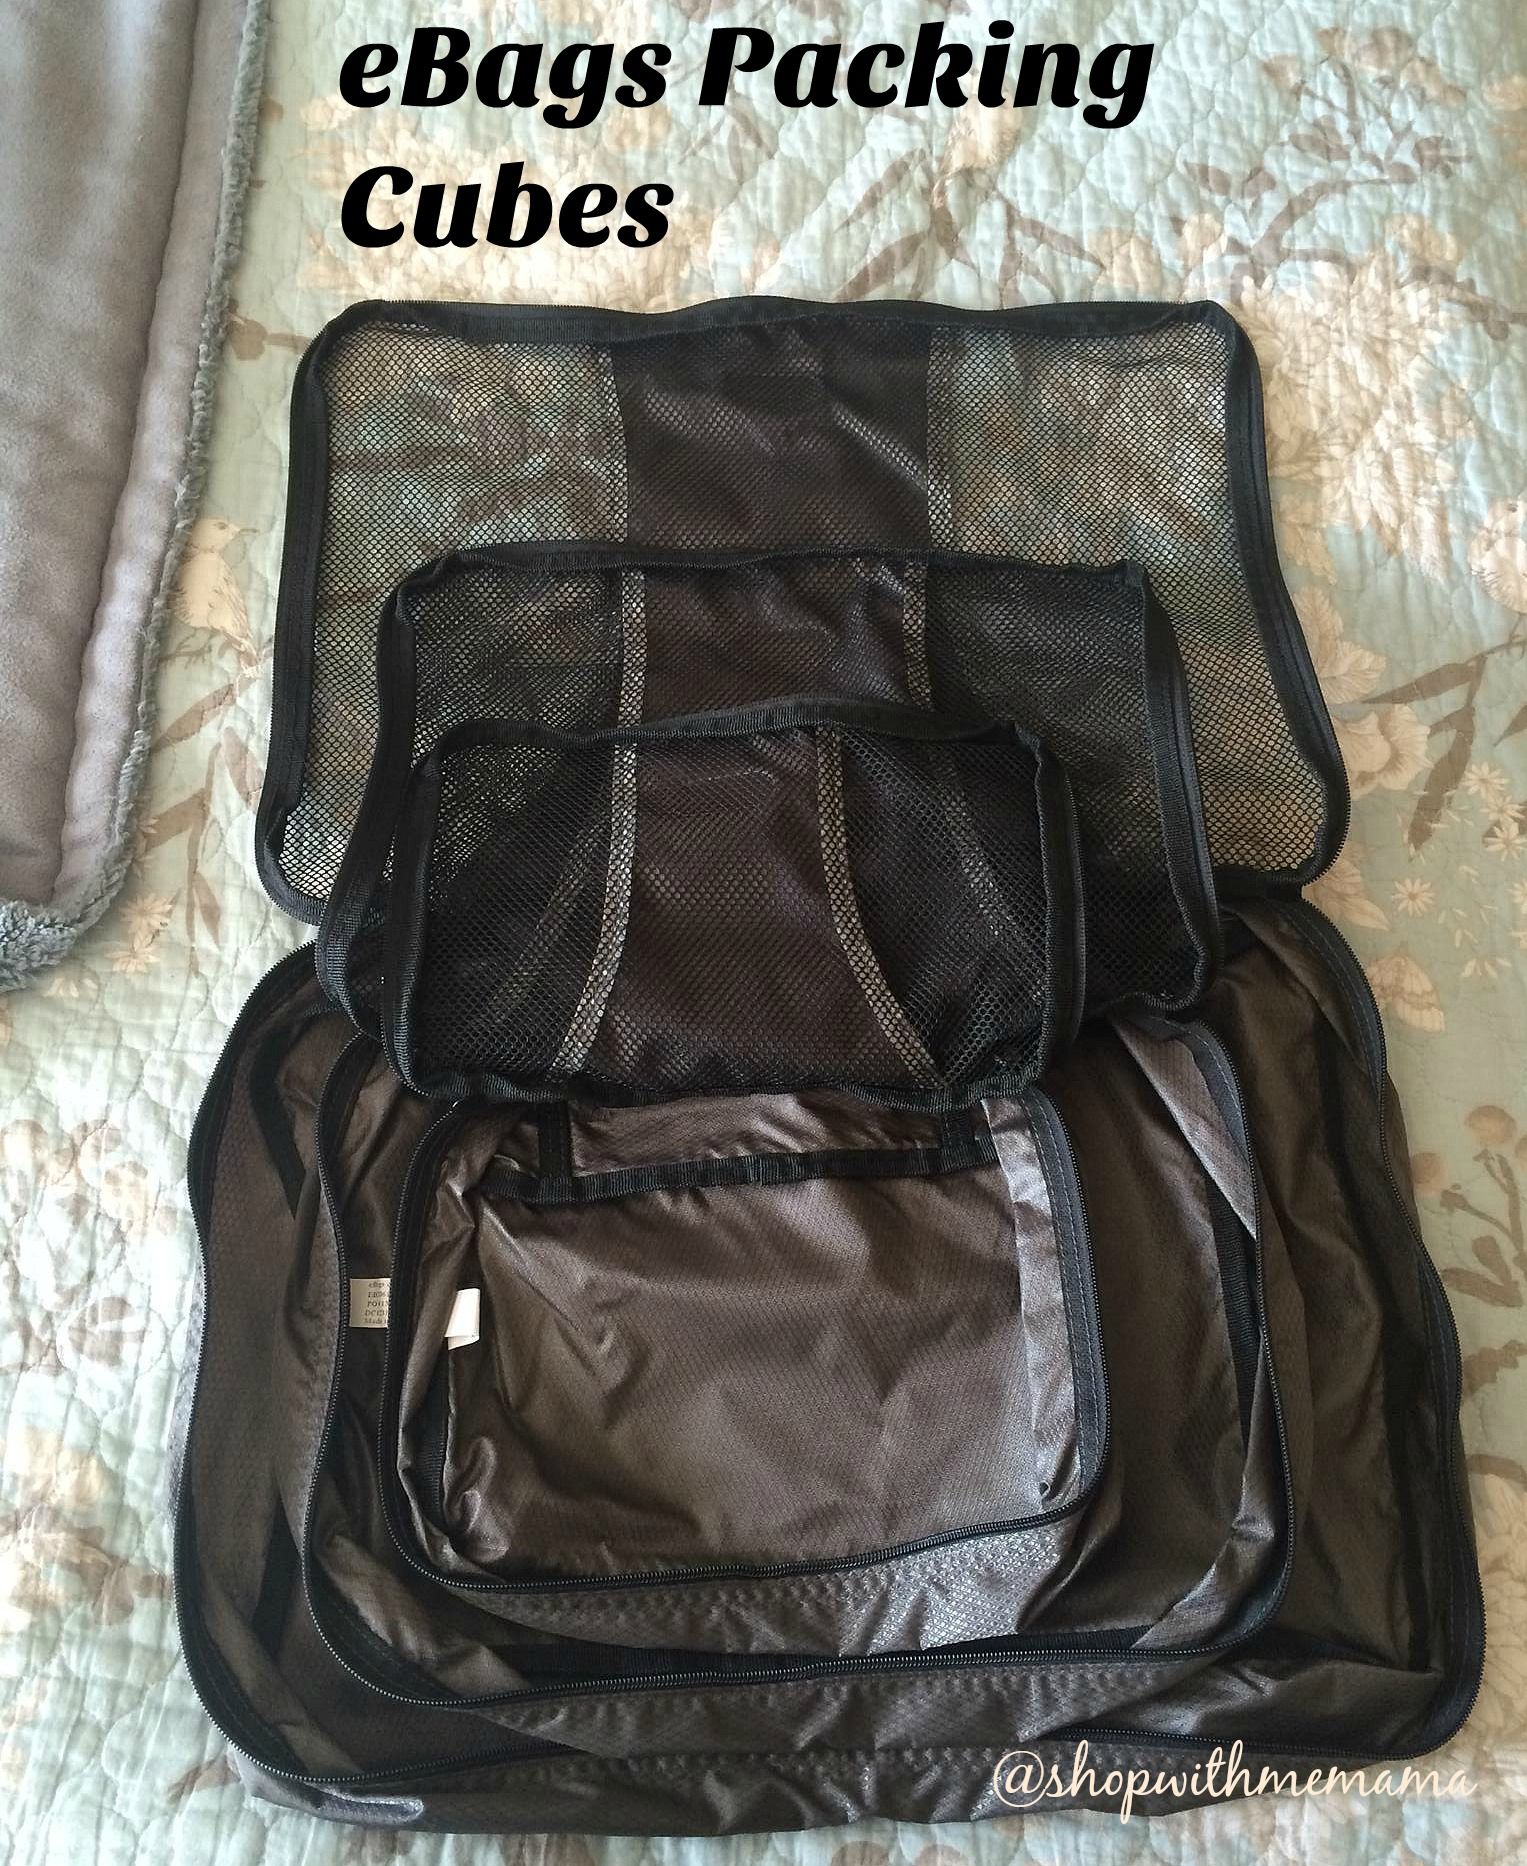 5 Fun Back To School Essentials To Check Out eBags Packing Cubes